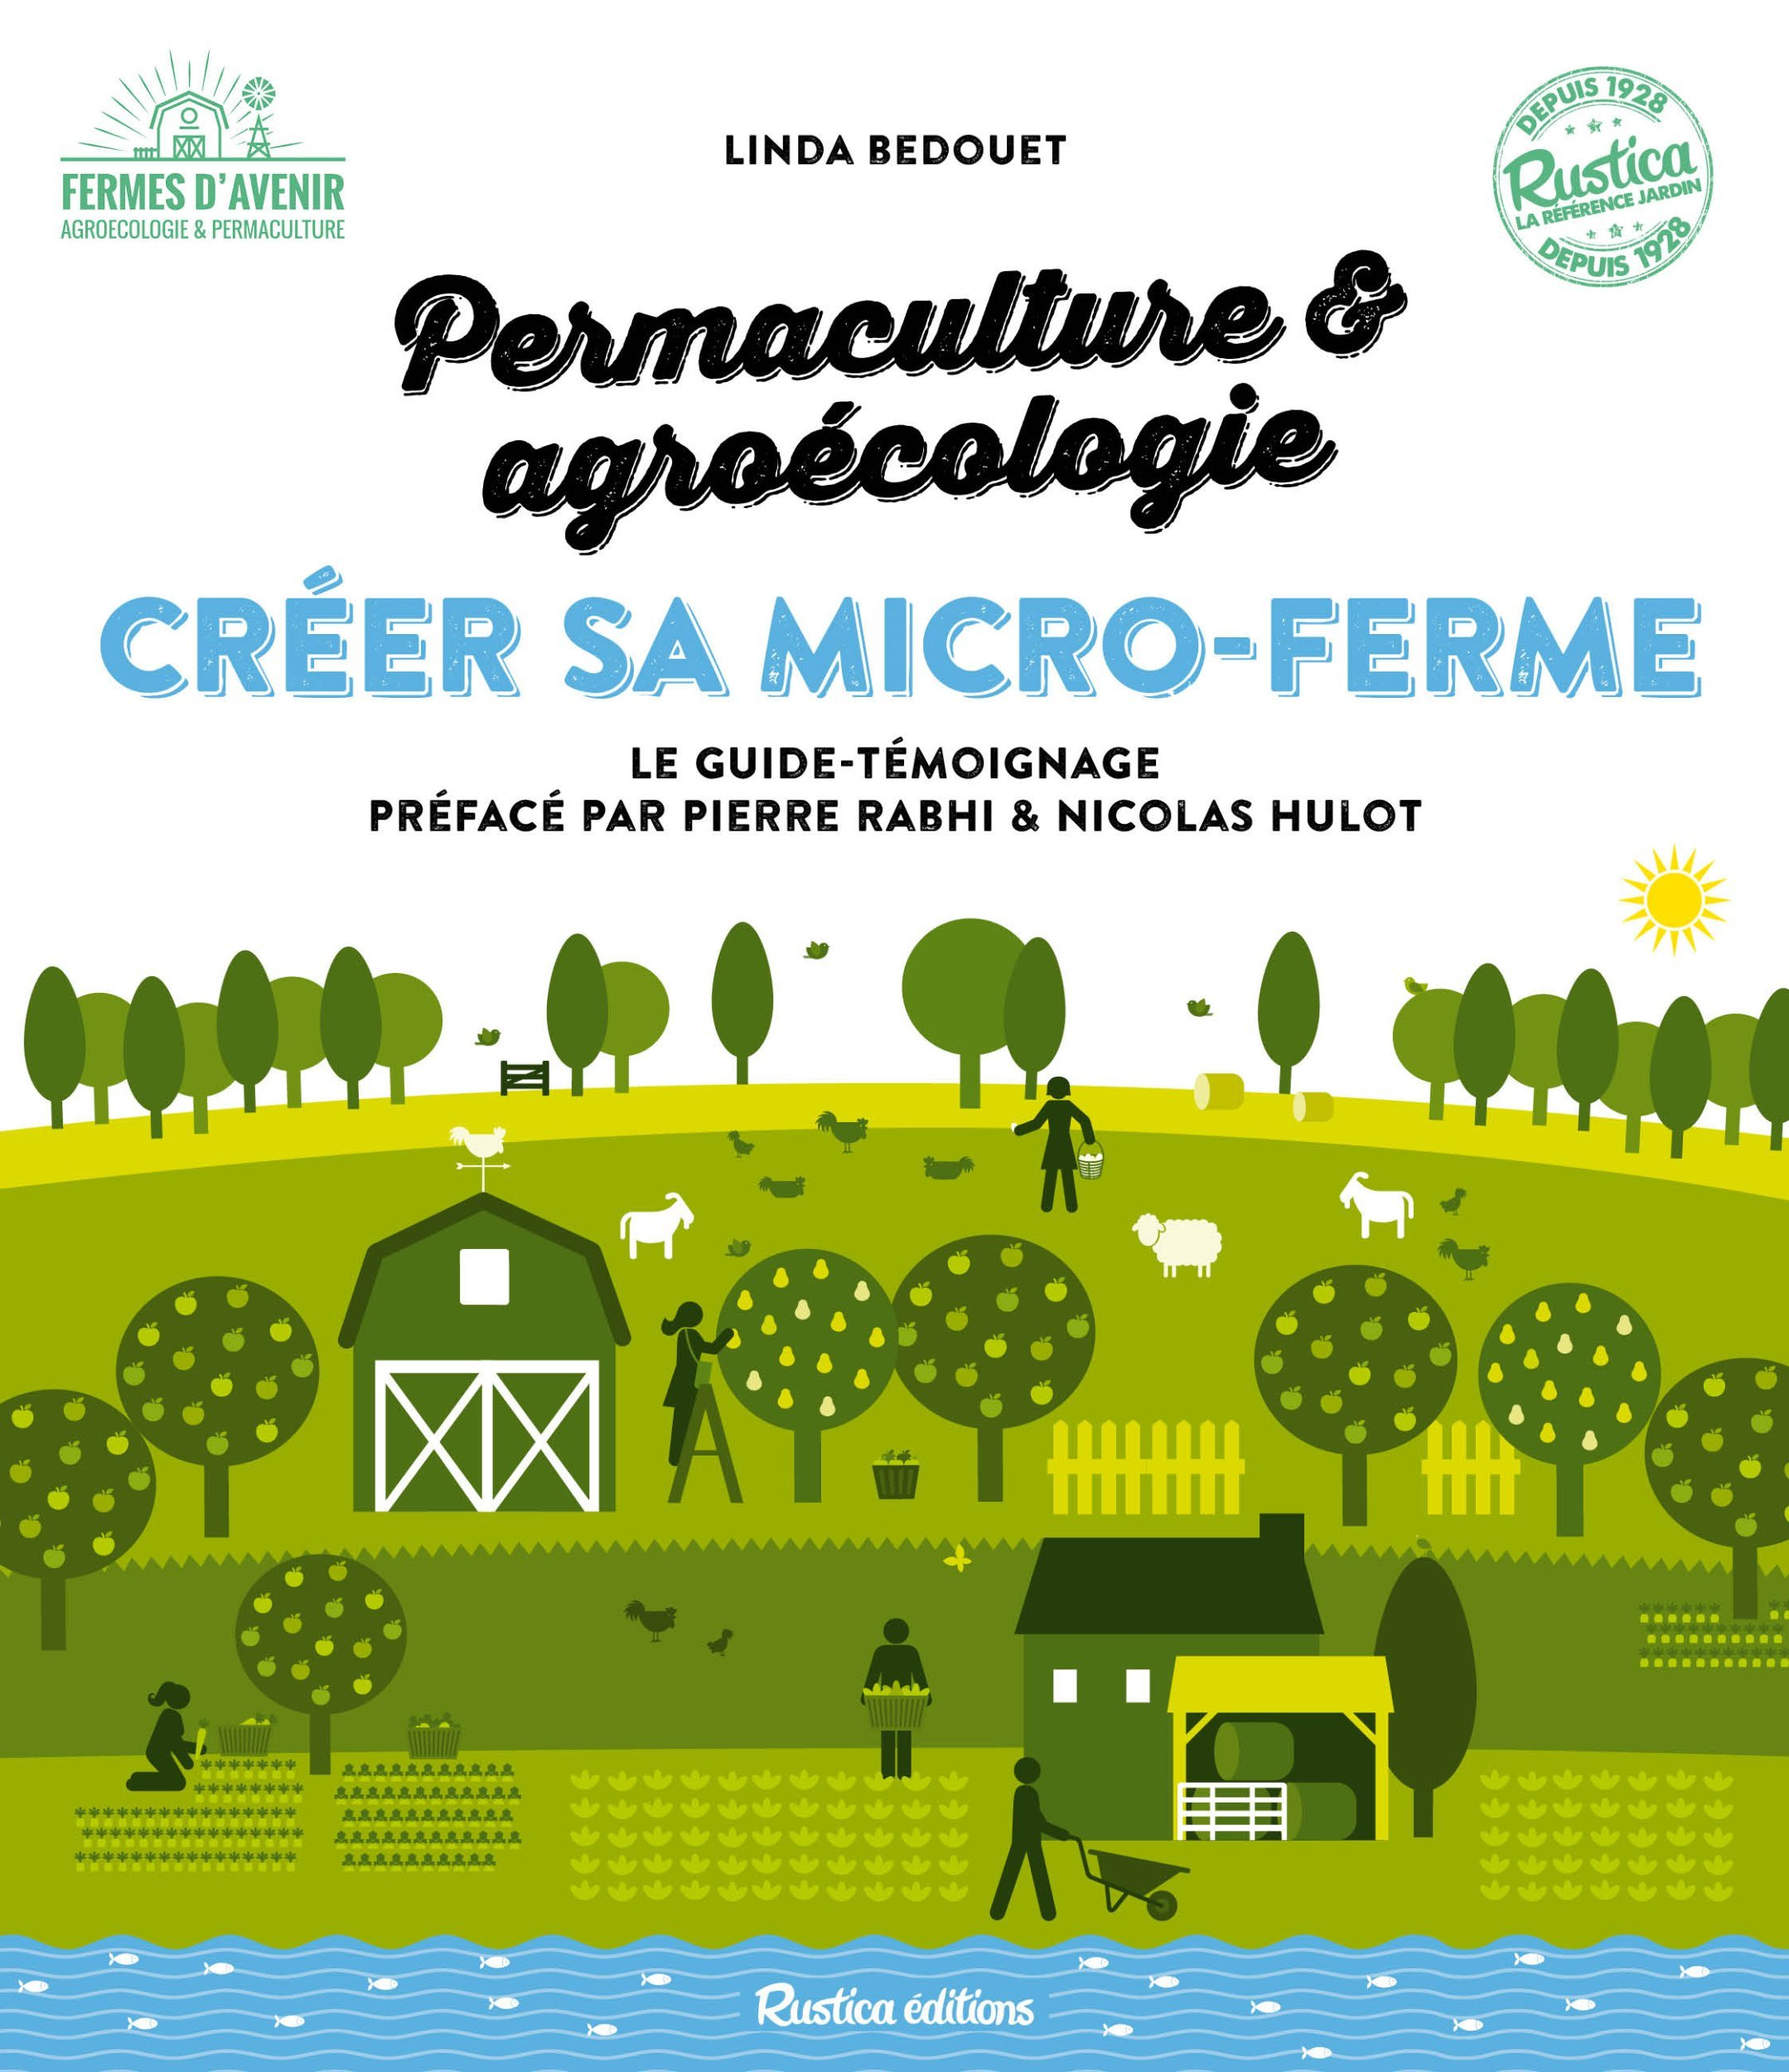 CREER SA MICRO-FERME : PERMACULTURE ET AGROECOLOGIE